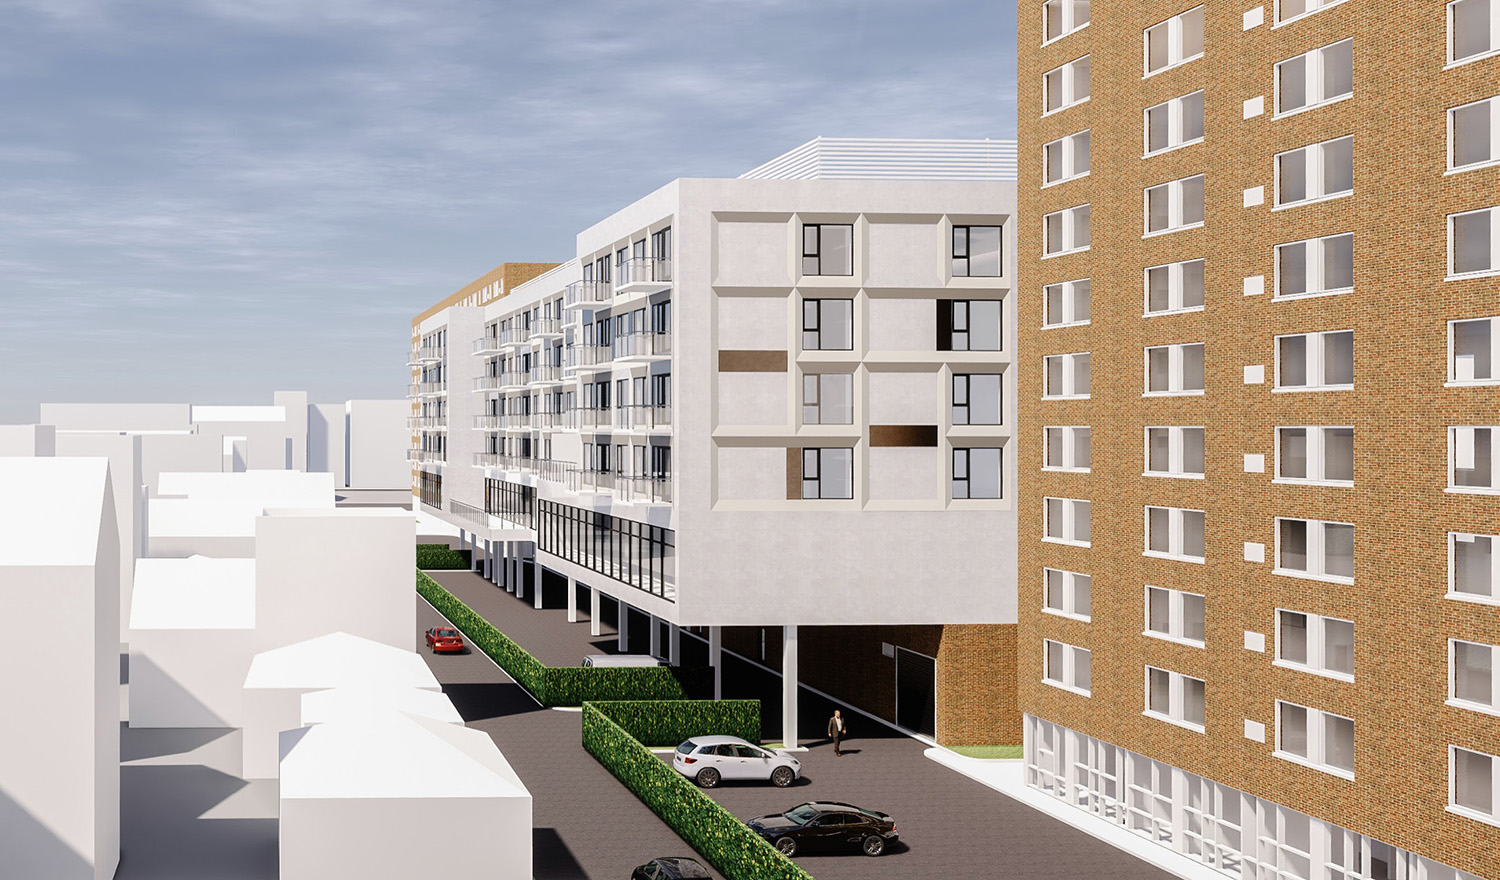 View of 2700 N Sheffield Avenue at Edith Spurlock Apartments. Rendering by RATIO